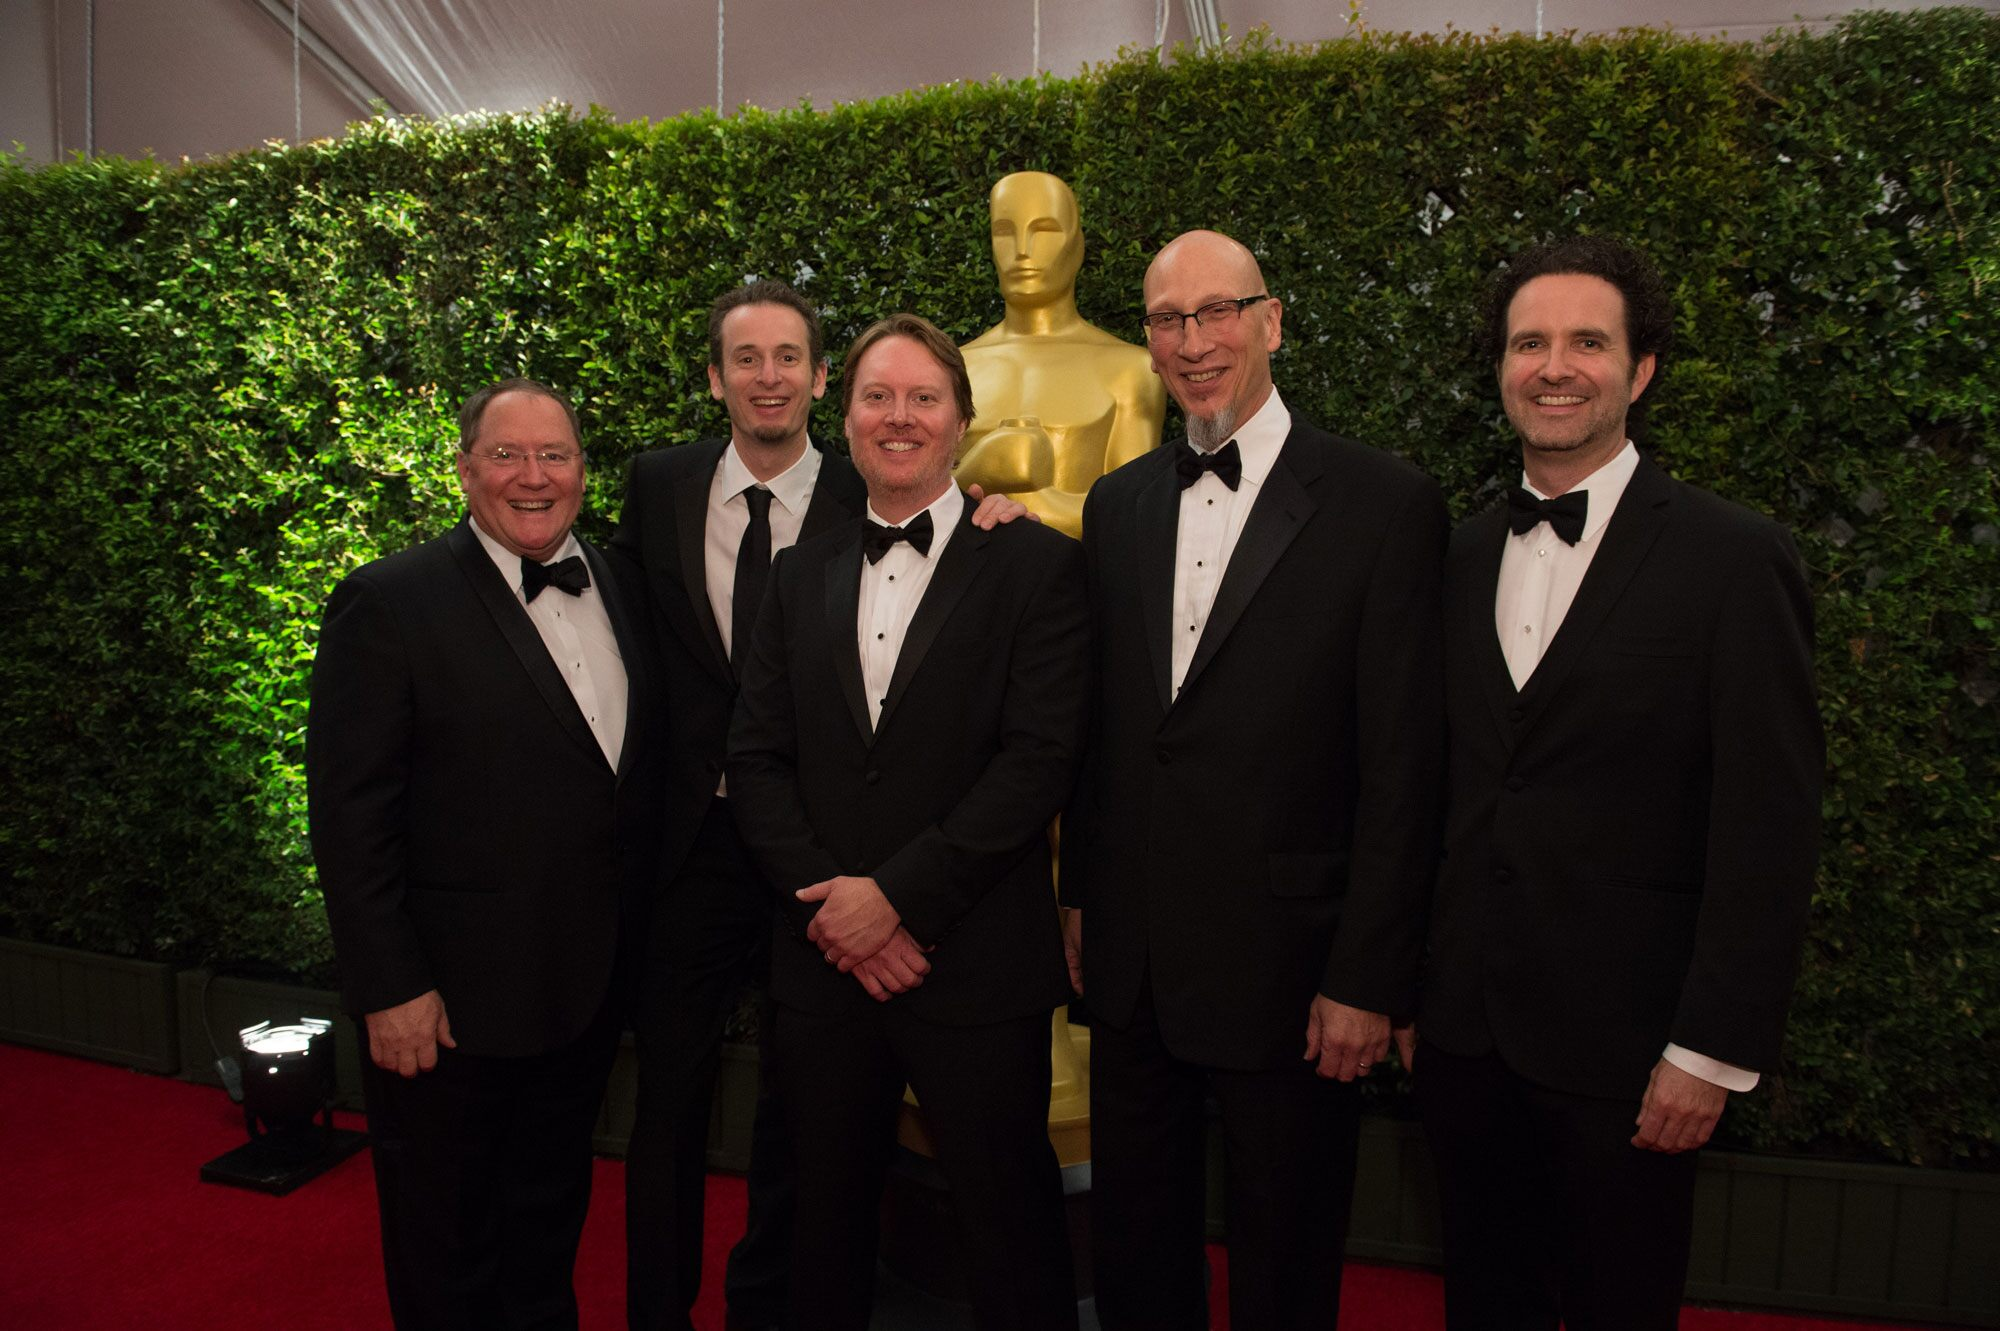 """John Lasseter with the team from """"Big Hero 6"""" at the 6th Annual Governors Awards"""